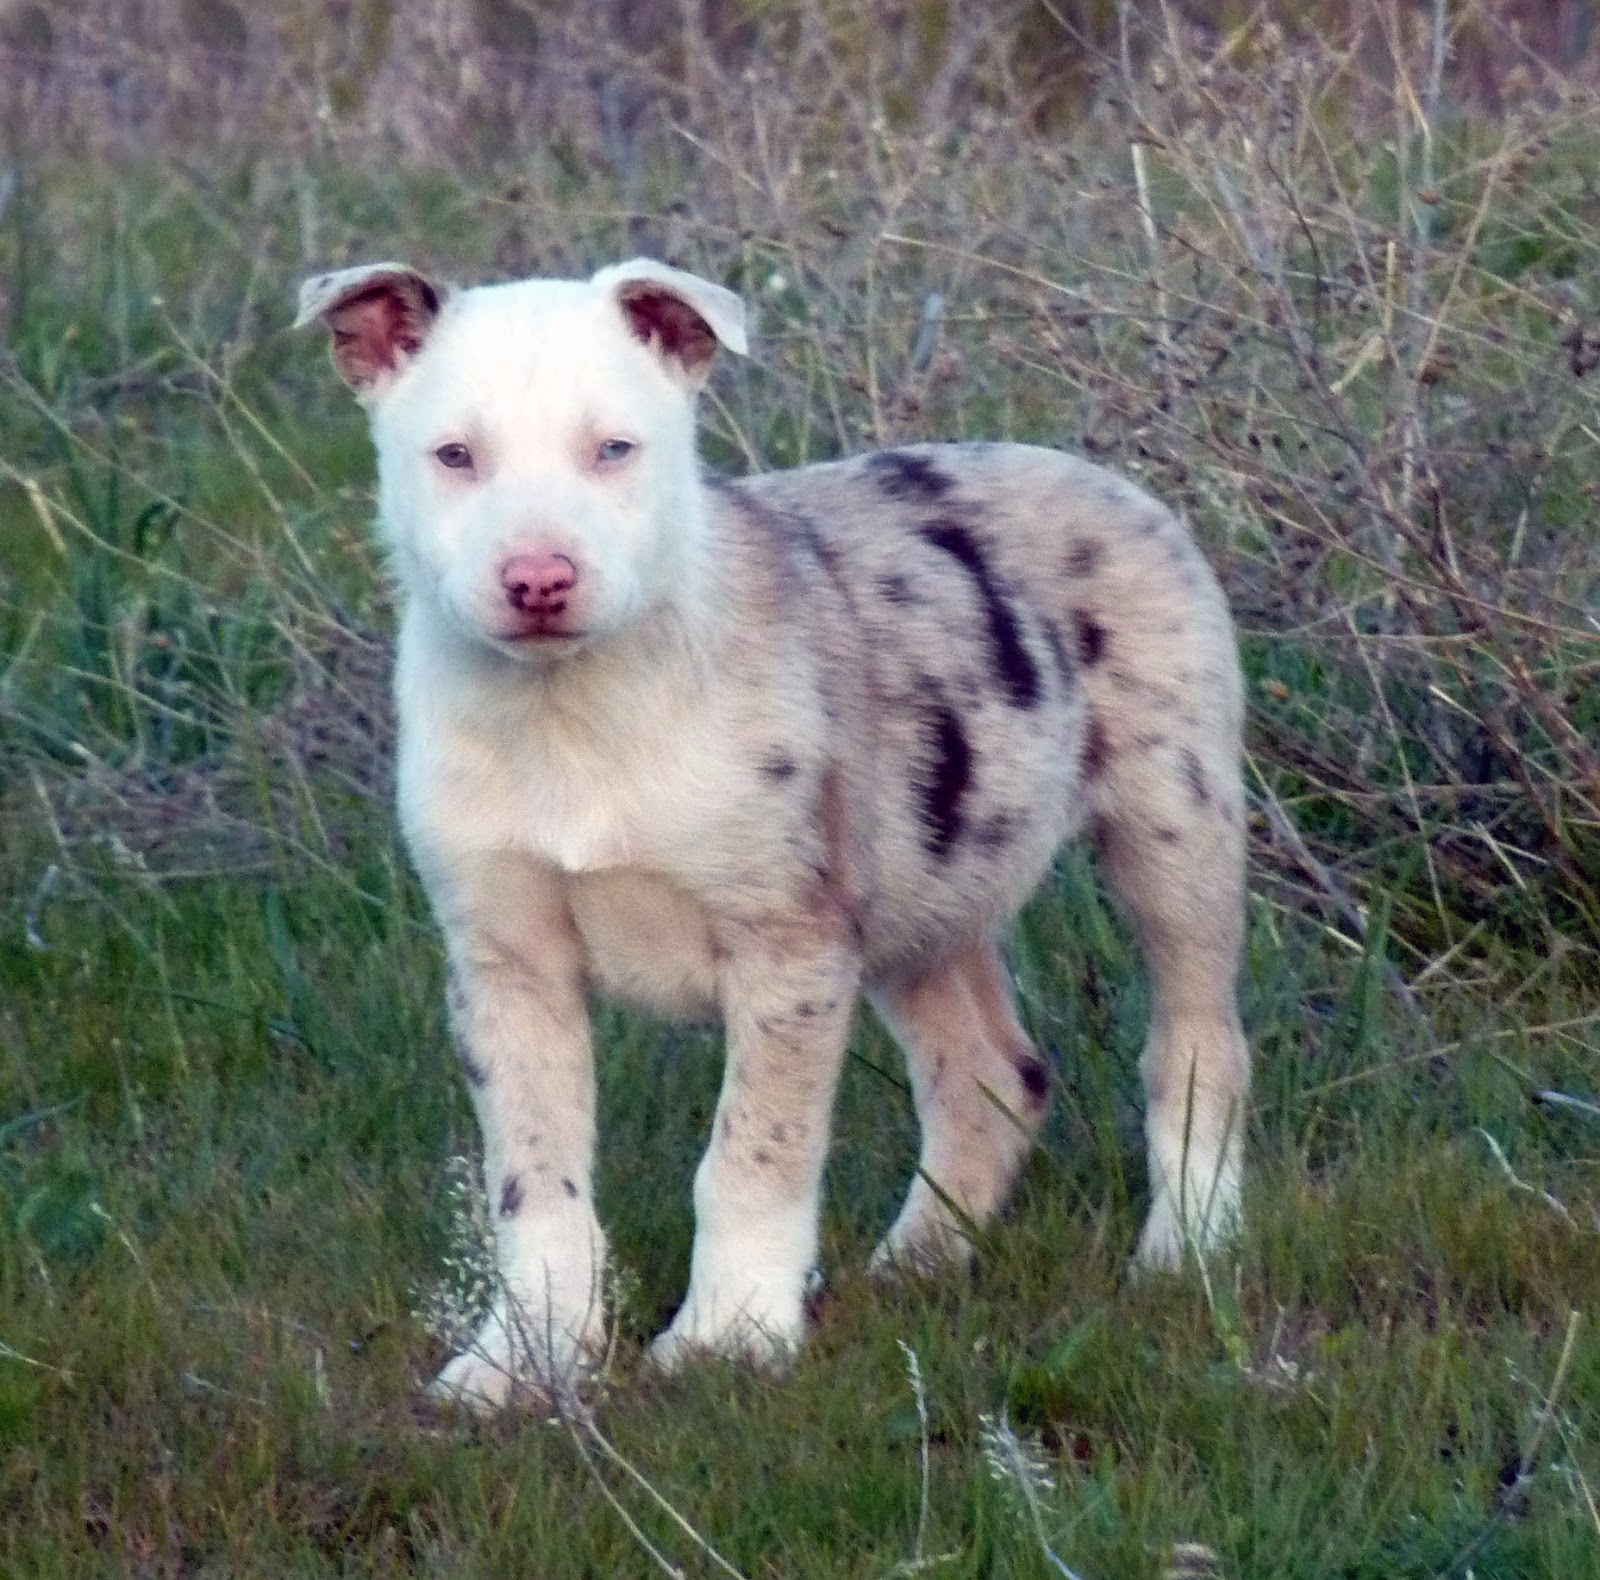 Hanging tree cow dogs for sale - Thread Lost In The Woods A Cautionary Tale